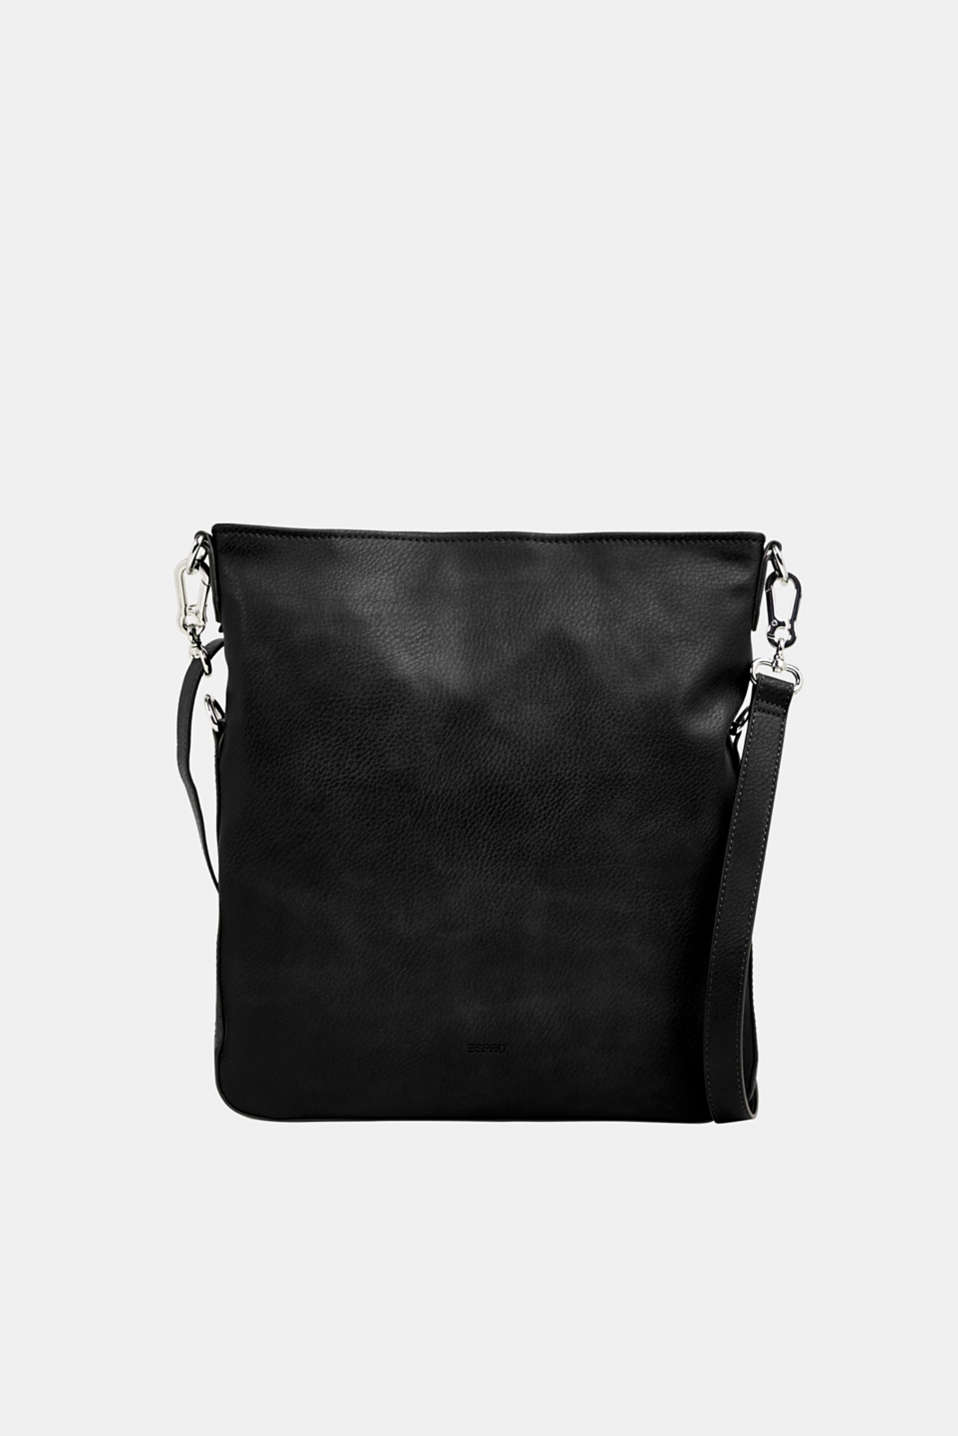 Esprit - Flapover bag in faux leather